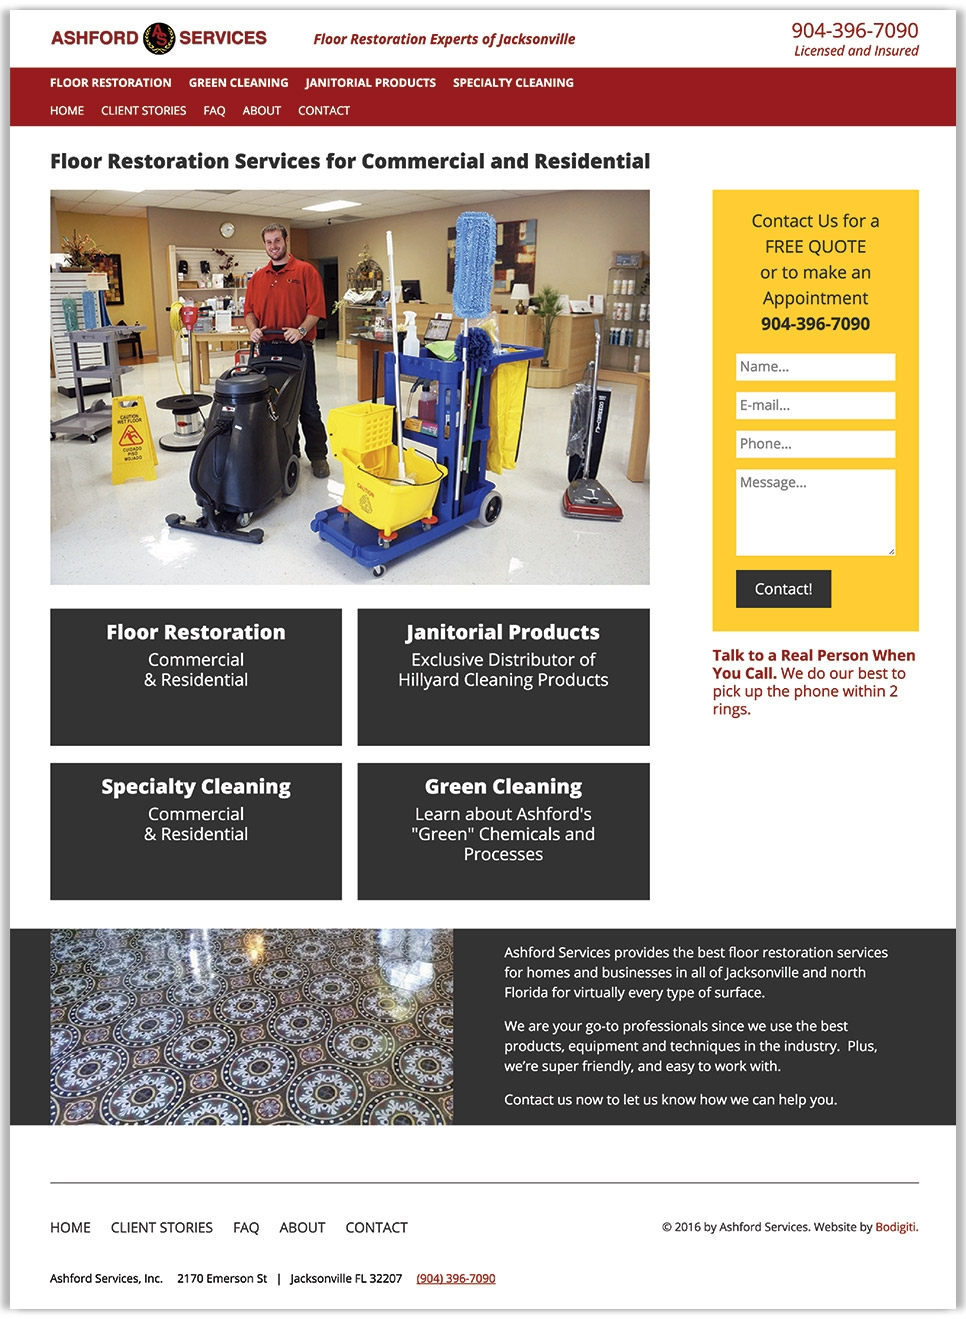 Ashford Services Company's full homepage design, experts in floor restoration